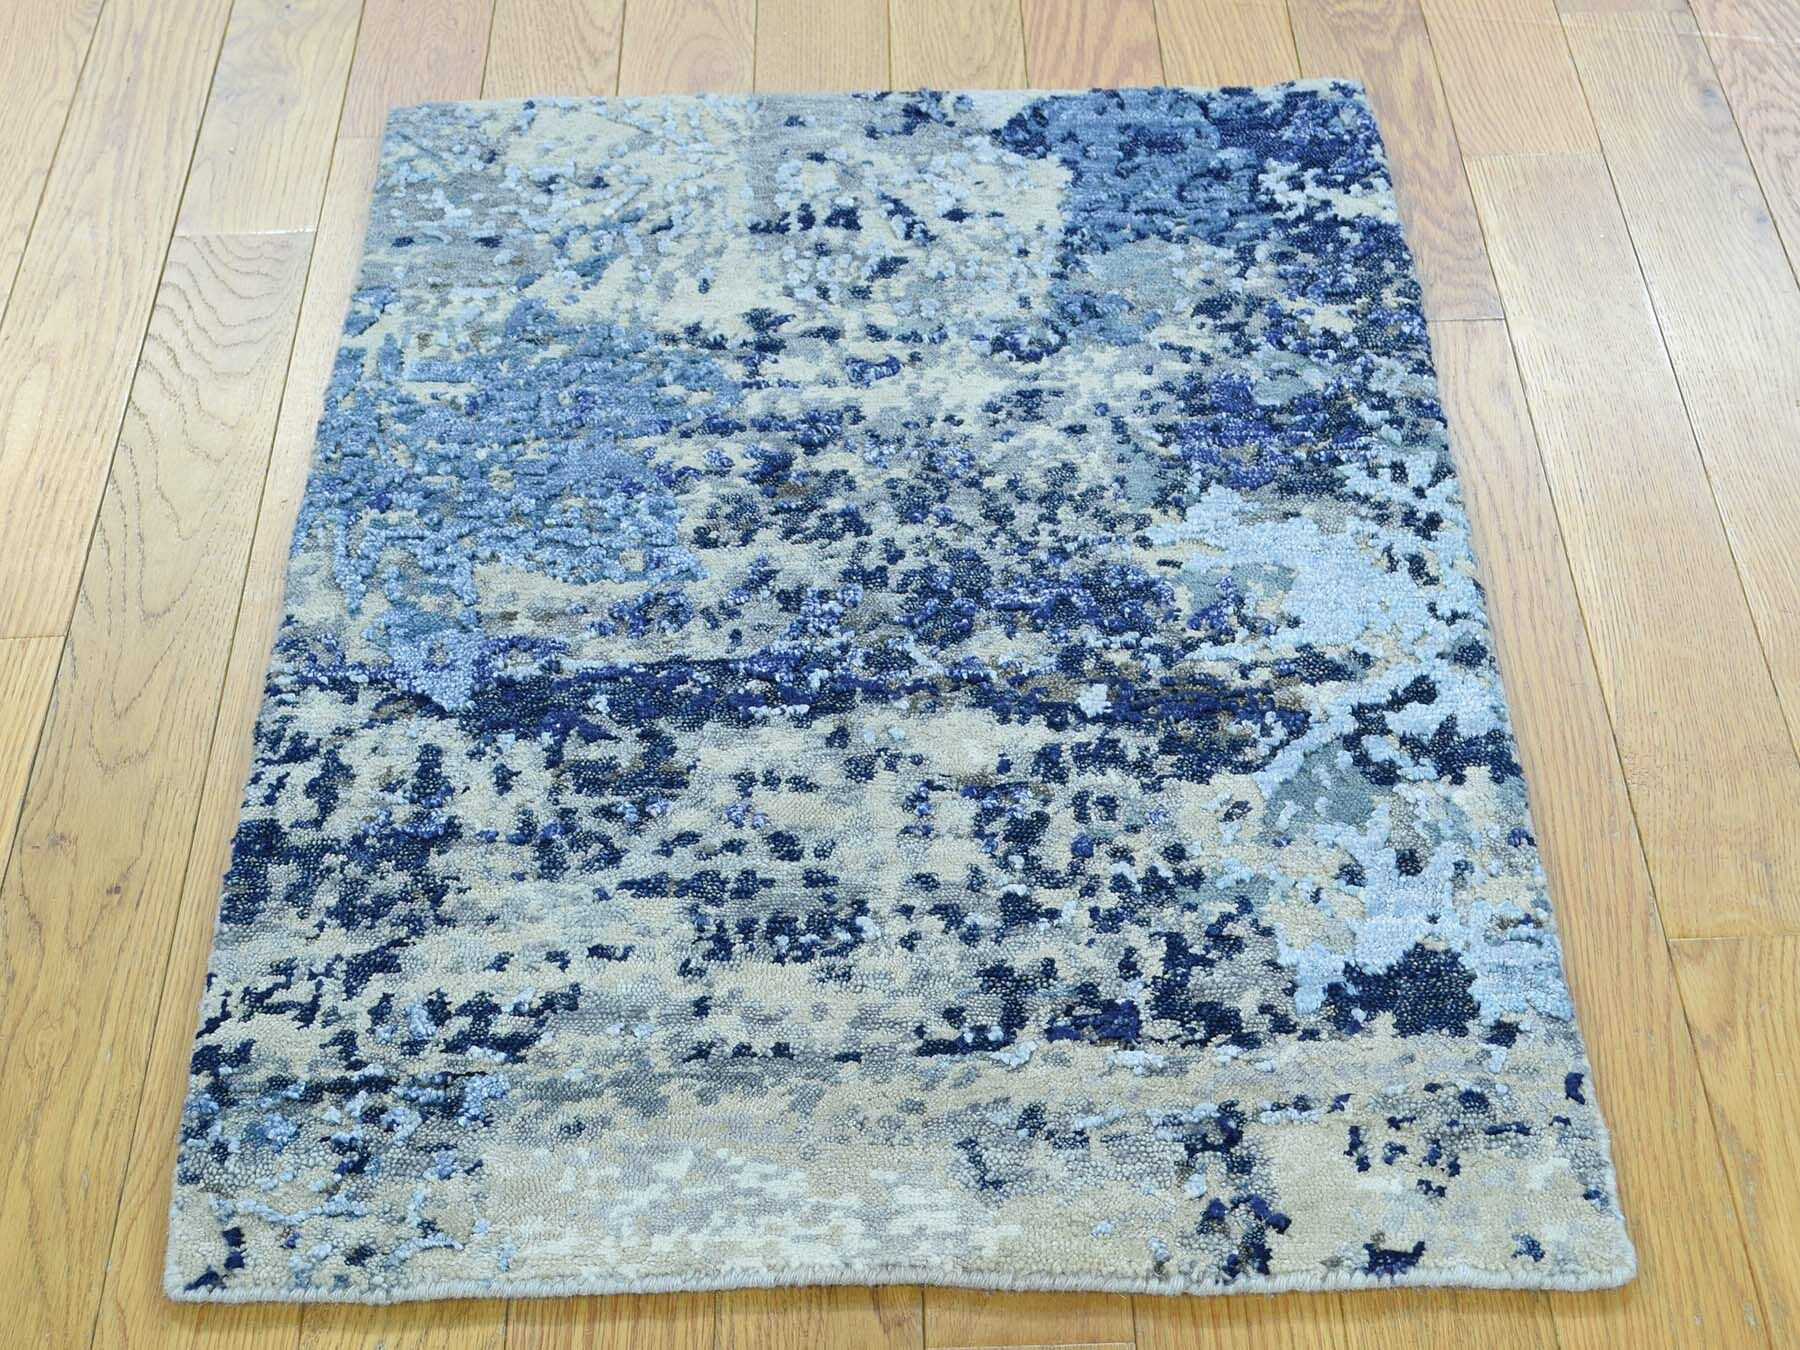 One-of-a-Kind Brimfield Abstract Design Handwoven Wool/Silk Area Rug